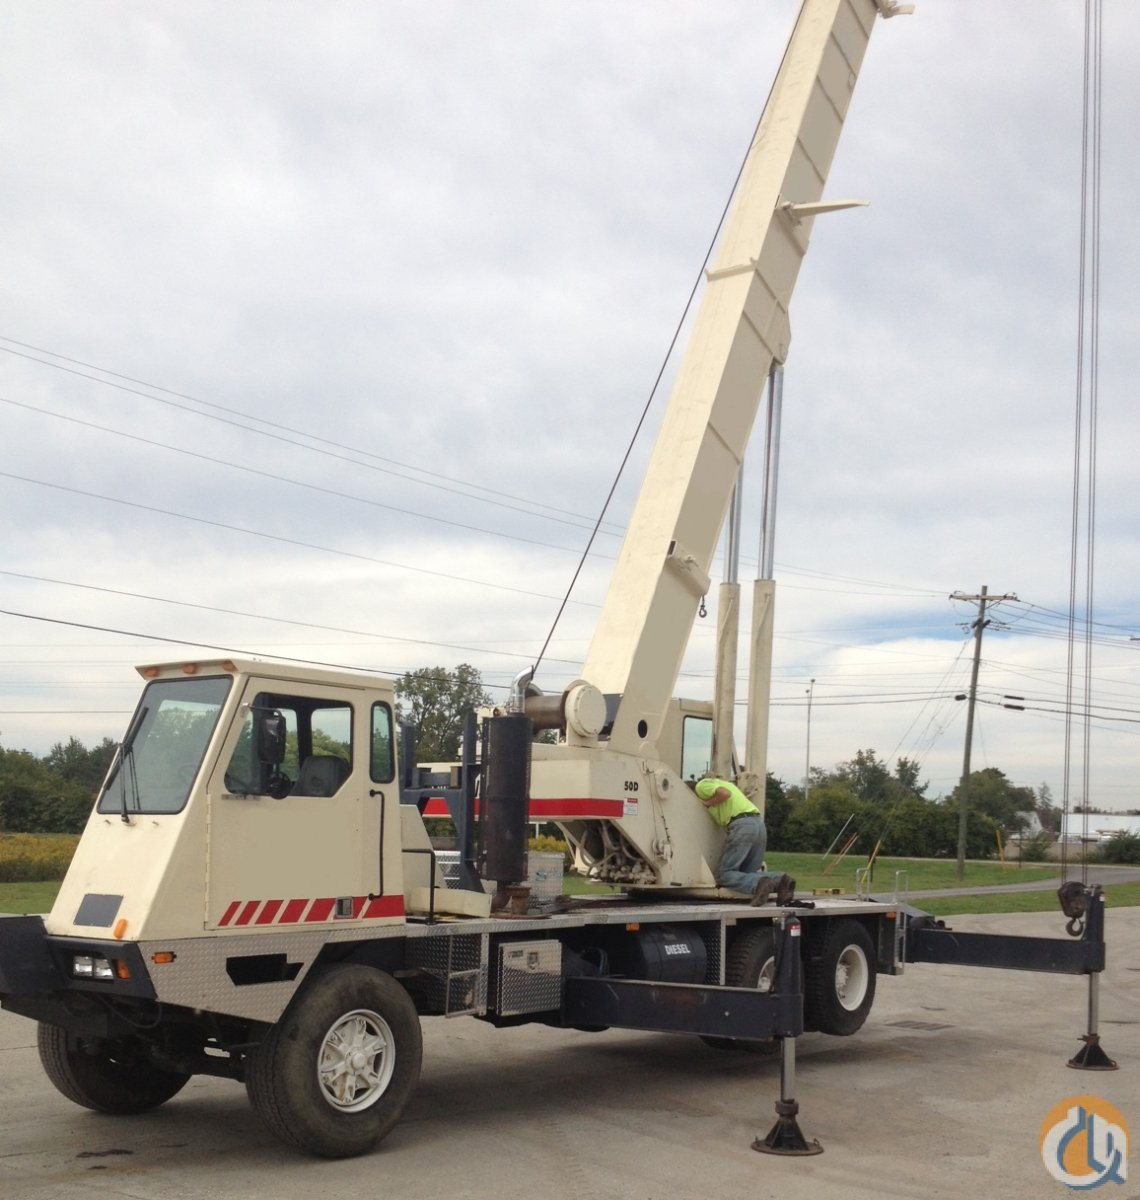 Lorain MCH350D Crane for Sale or Rent in Columbus Ohio on CraneNetwork.com